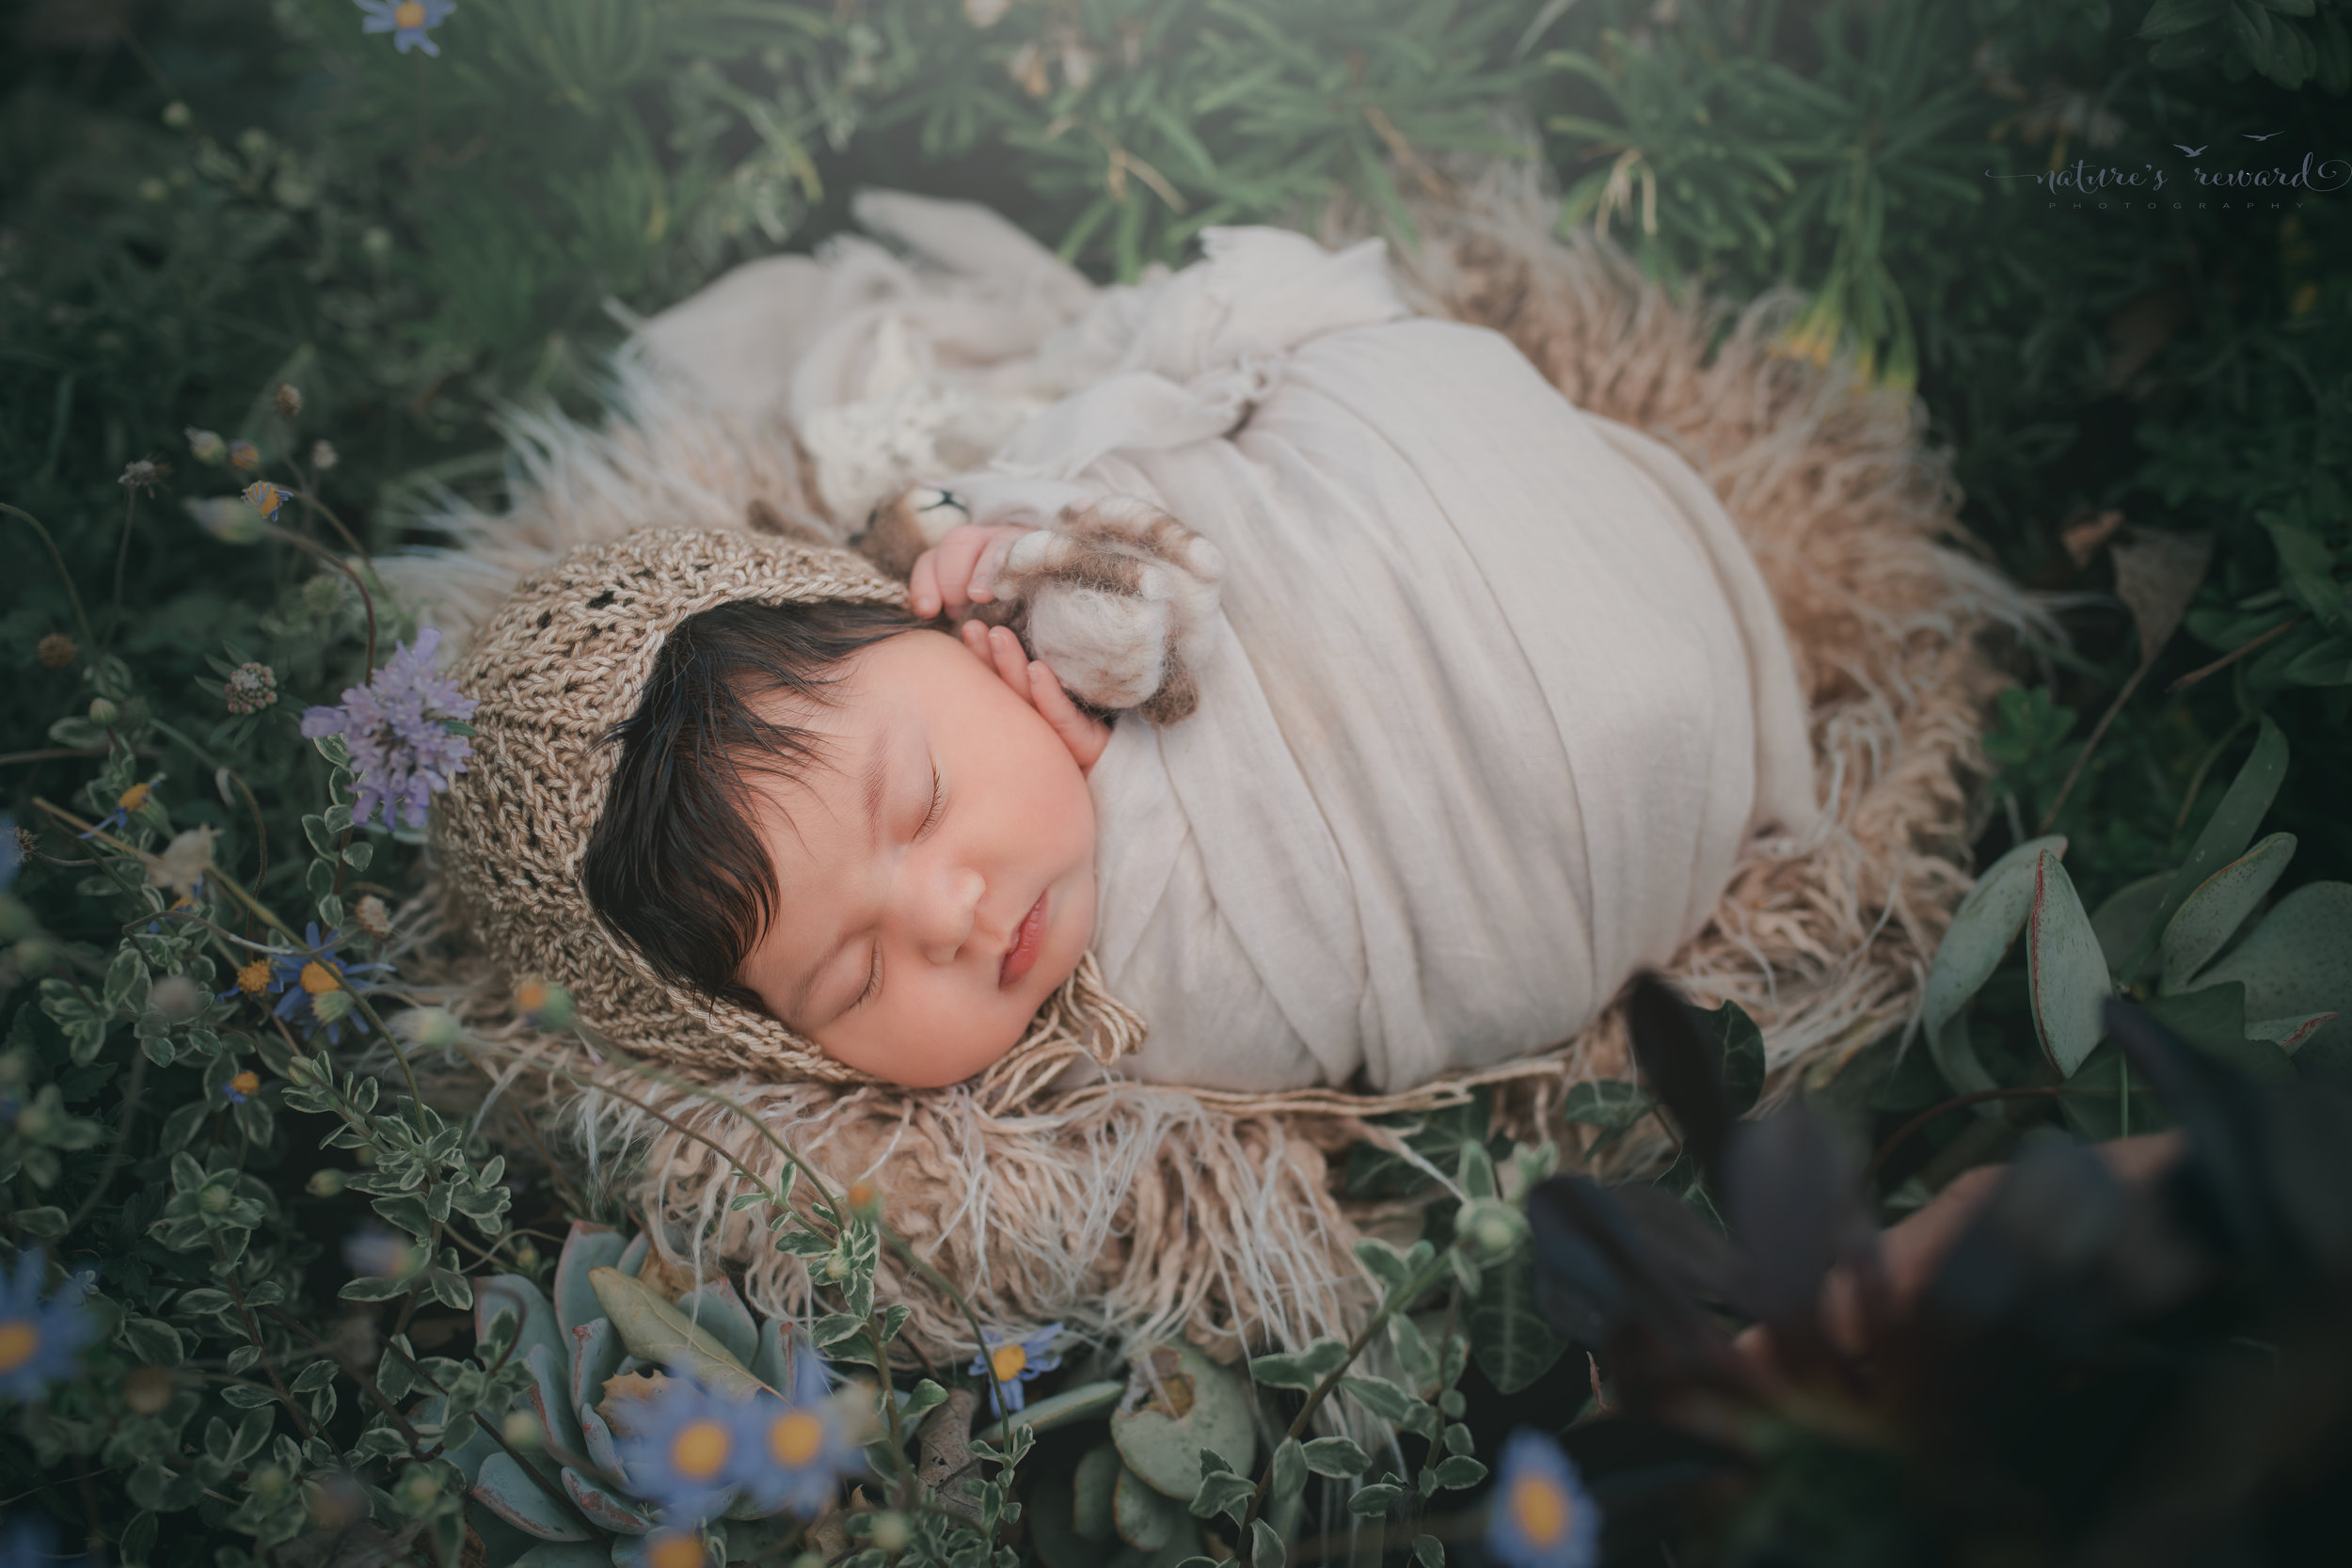 Newborn baby girl in this garden portrait of succulents and flowers, a portrait by Nature's Reward Photography